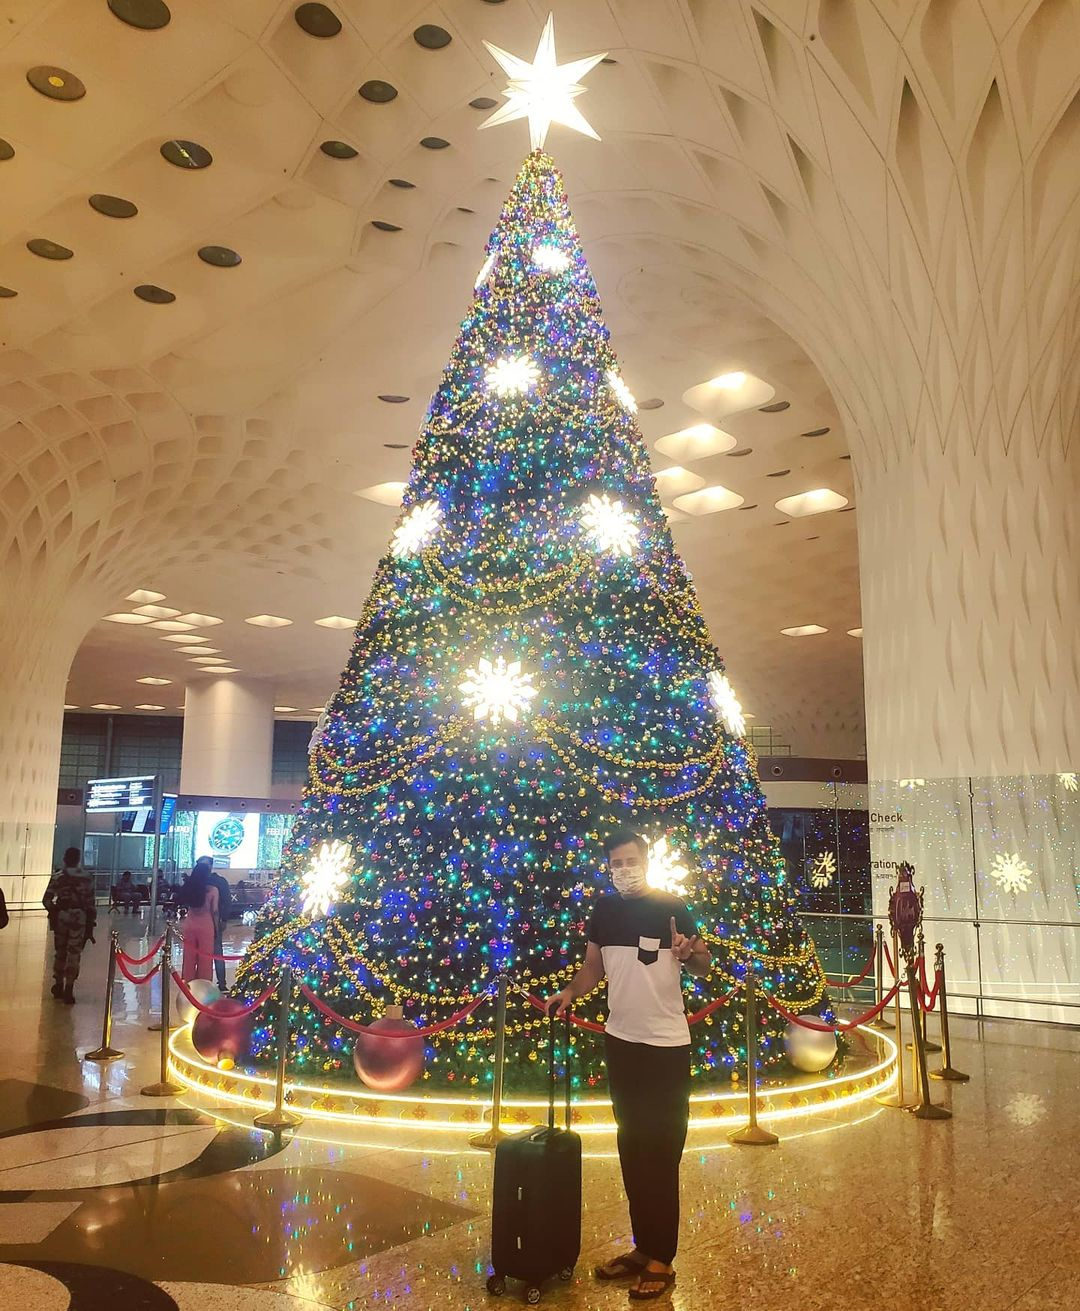 Ojas Rawal,  Mumbai, airport, christmas, tree, decoration, celebrating, festival, actor, OjasRawal, christmas2020, christmasdecor, christmastree, christmasdecorations, christmastime, christmaslights, christmasmood, christmaseve, christmasspirit, xmas, xmastree, xmas2020, christmasvibes, mumbaiairport, csia, merrychristmas, merryxmas, christmasday, christmasseason, globetrotter, traveler